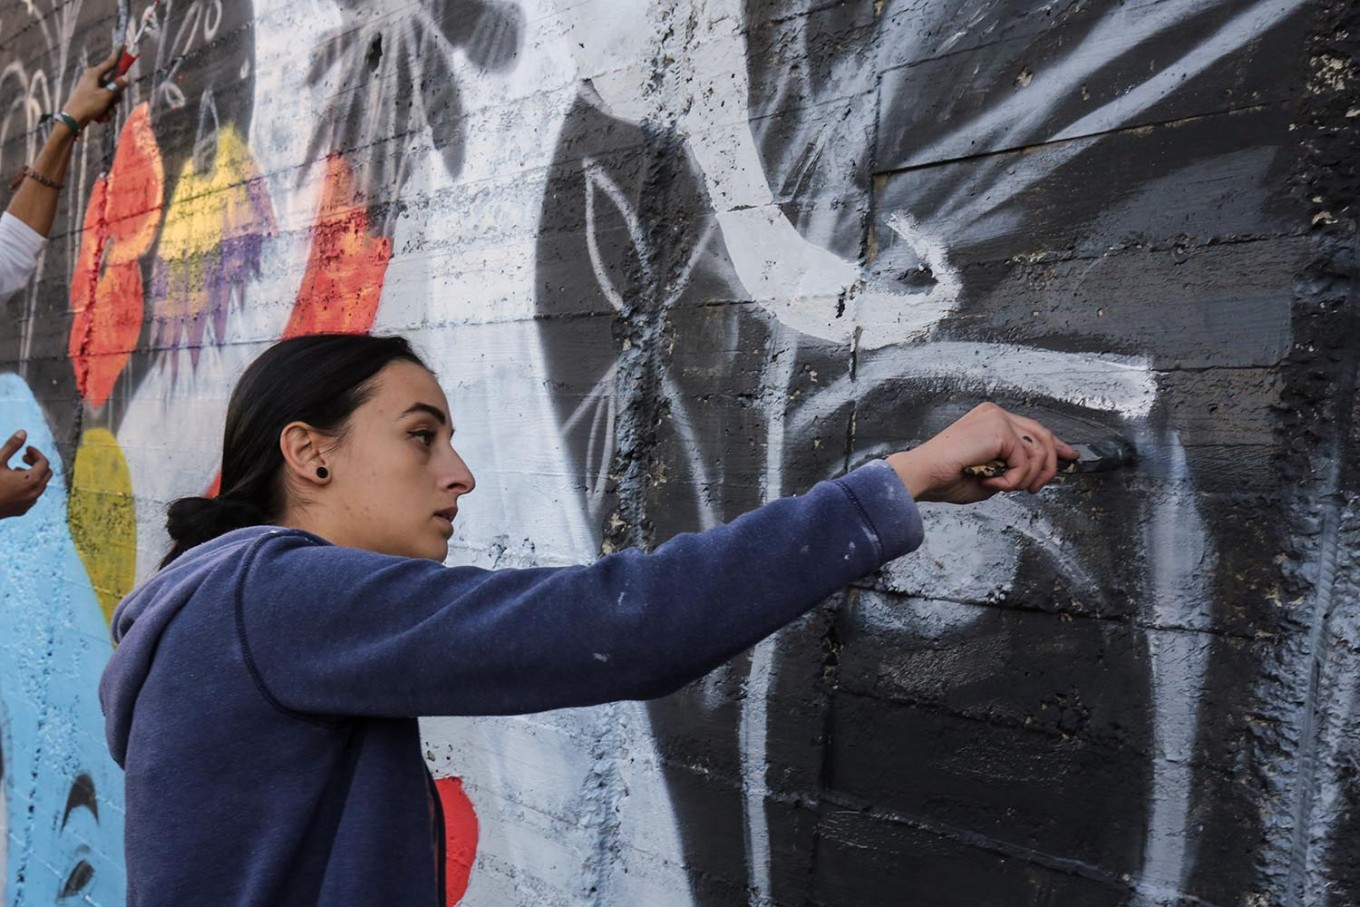 Suha Sultan, a 20-year-old graffiti artist and student, uses a brush to draw a mural on a wall in the Jordanian capital Amman on December 16, 2017.